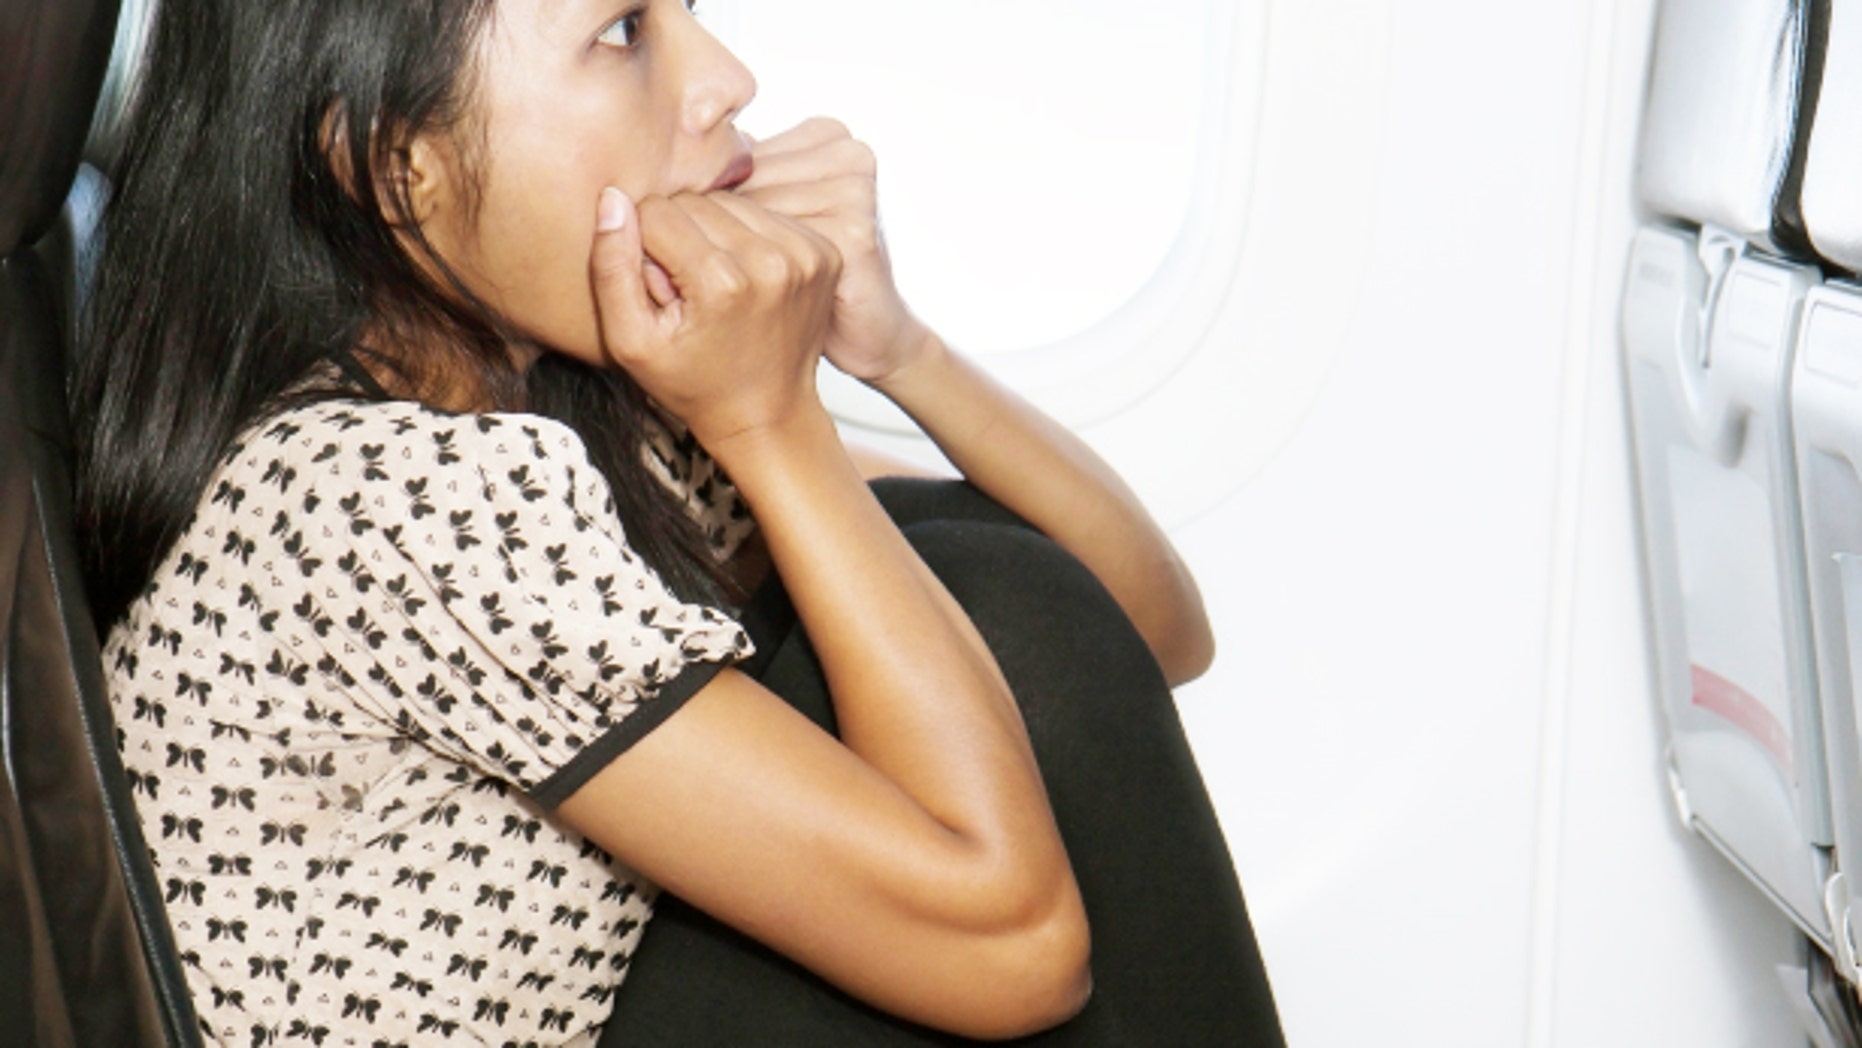 Are you a nervous wreck when flying?